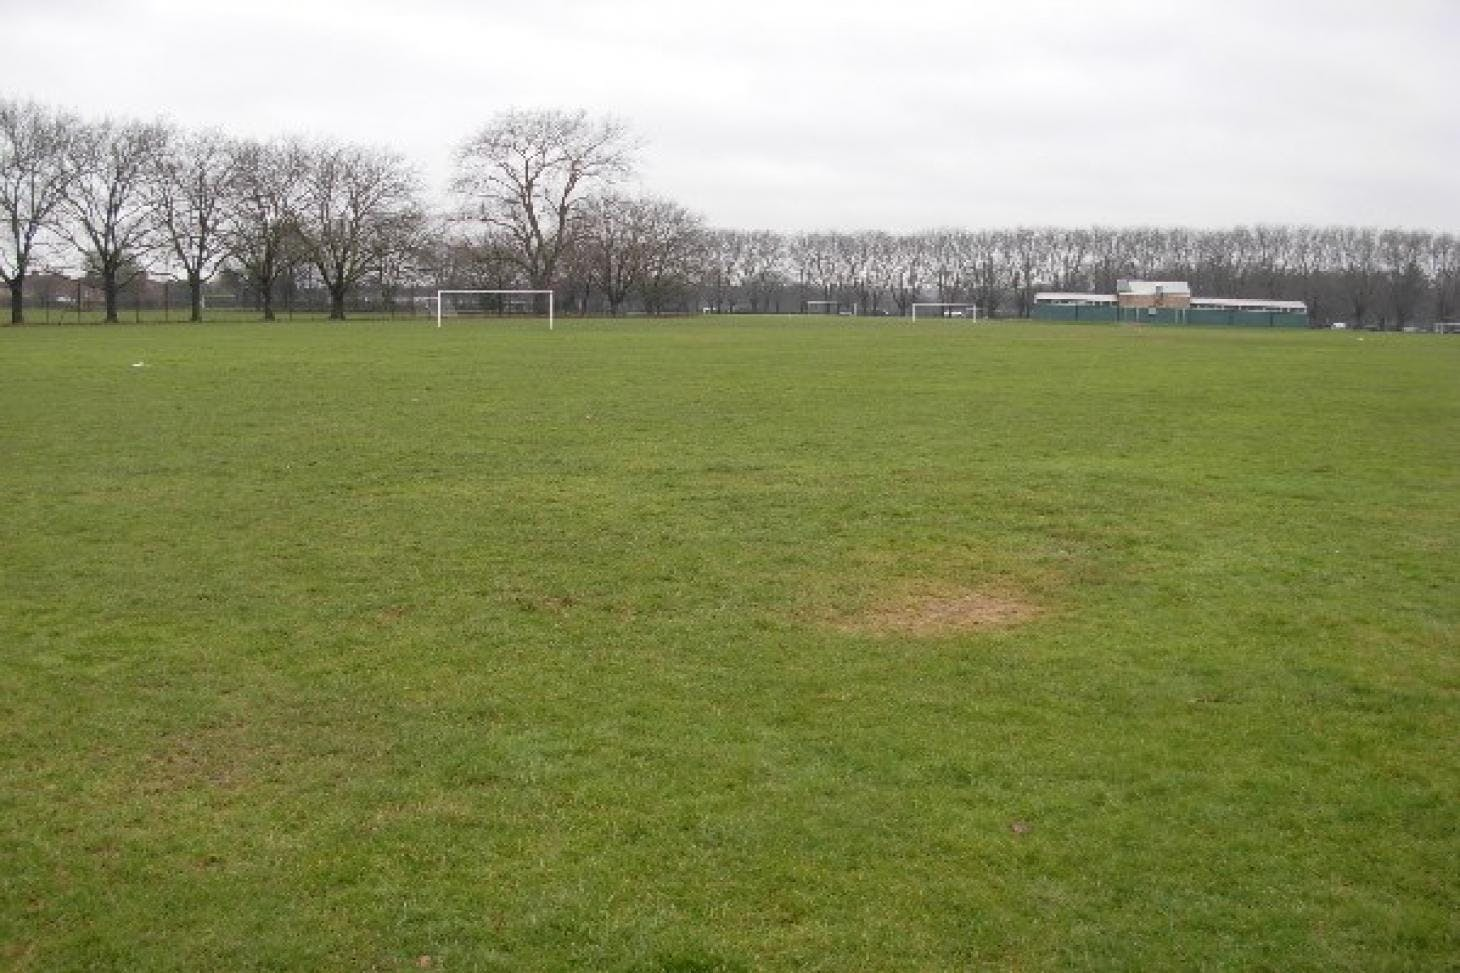 Church Street Recreation Ground 11 a side | Grass football pitch